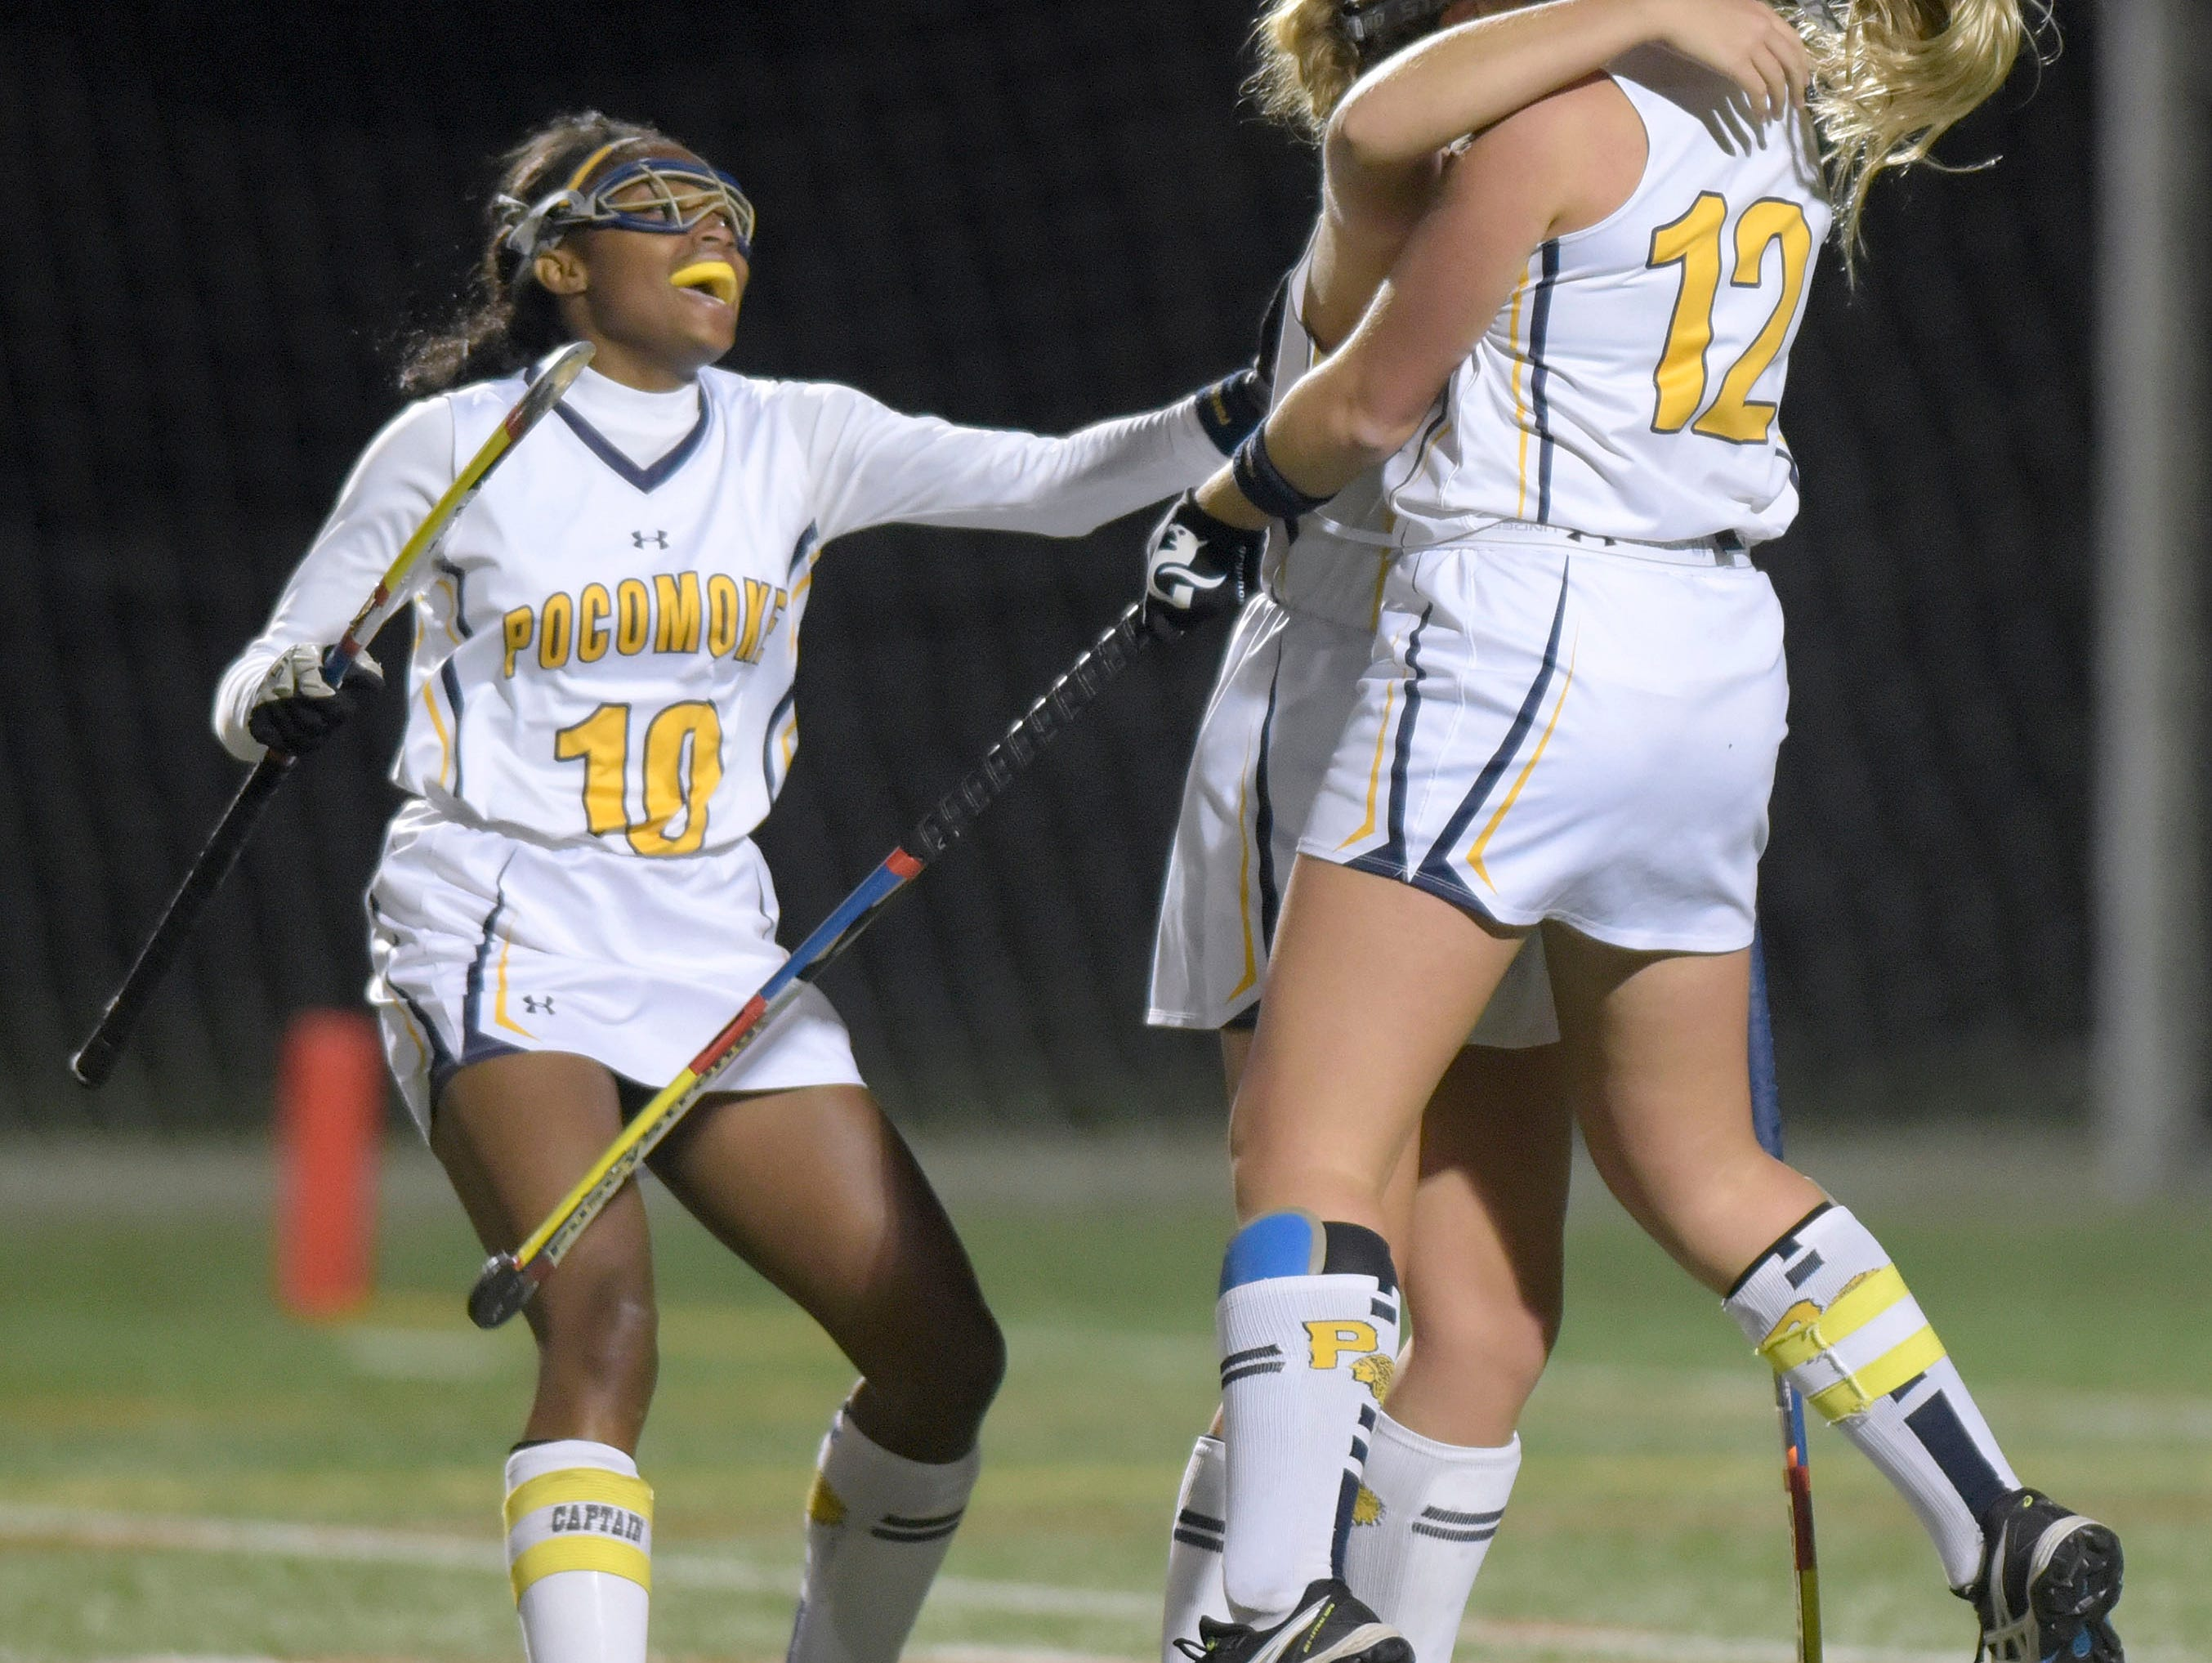 From left, Pocomoke's Shayla Jones, Kasey Lee and Lexi Butler celebrate Lee's goal against Manchester Valley in the second half of a Class 1A state semifinal field hockey game, Wednesday, Nov. 11, 2015 in Burtonsville. (Photo by Steve Ruark)